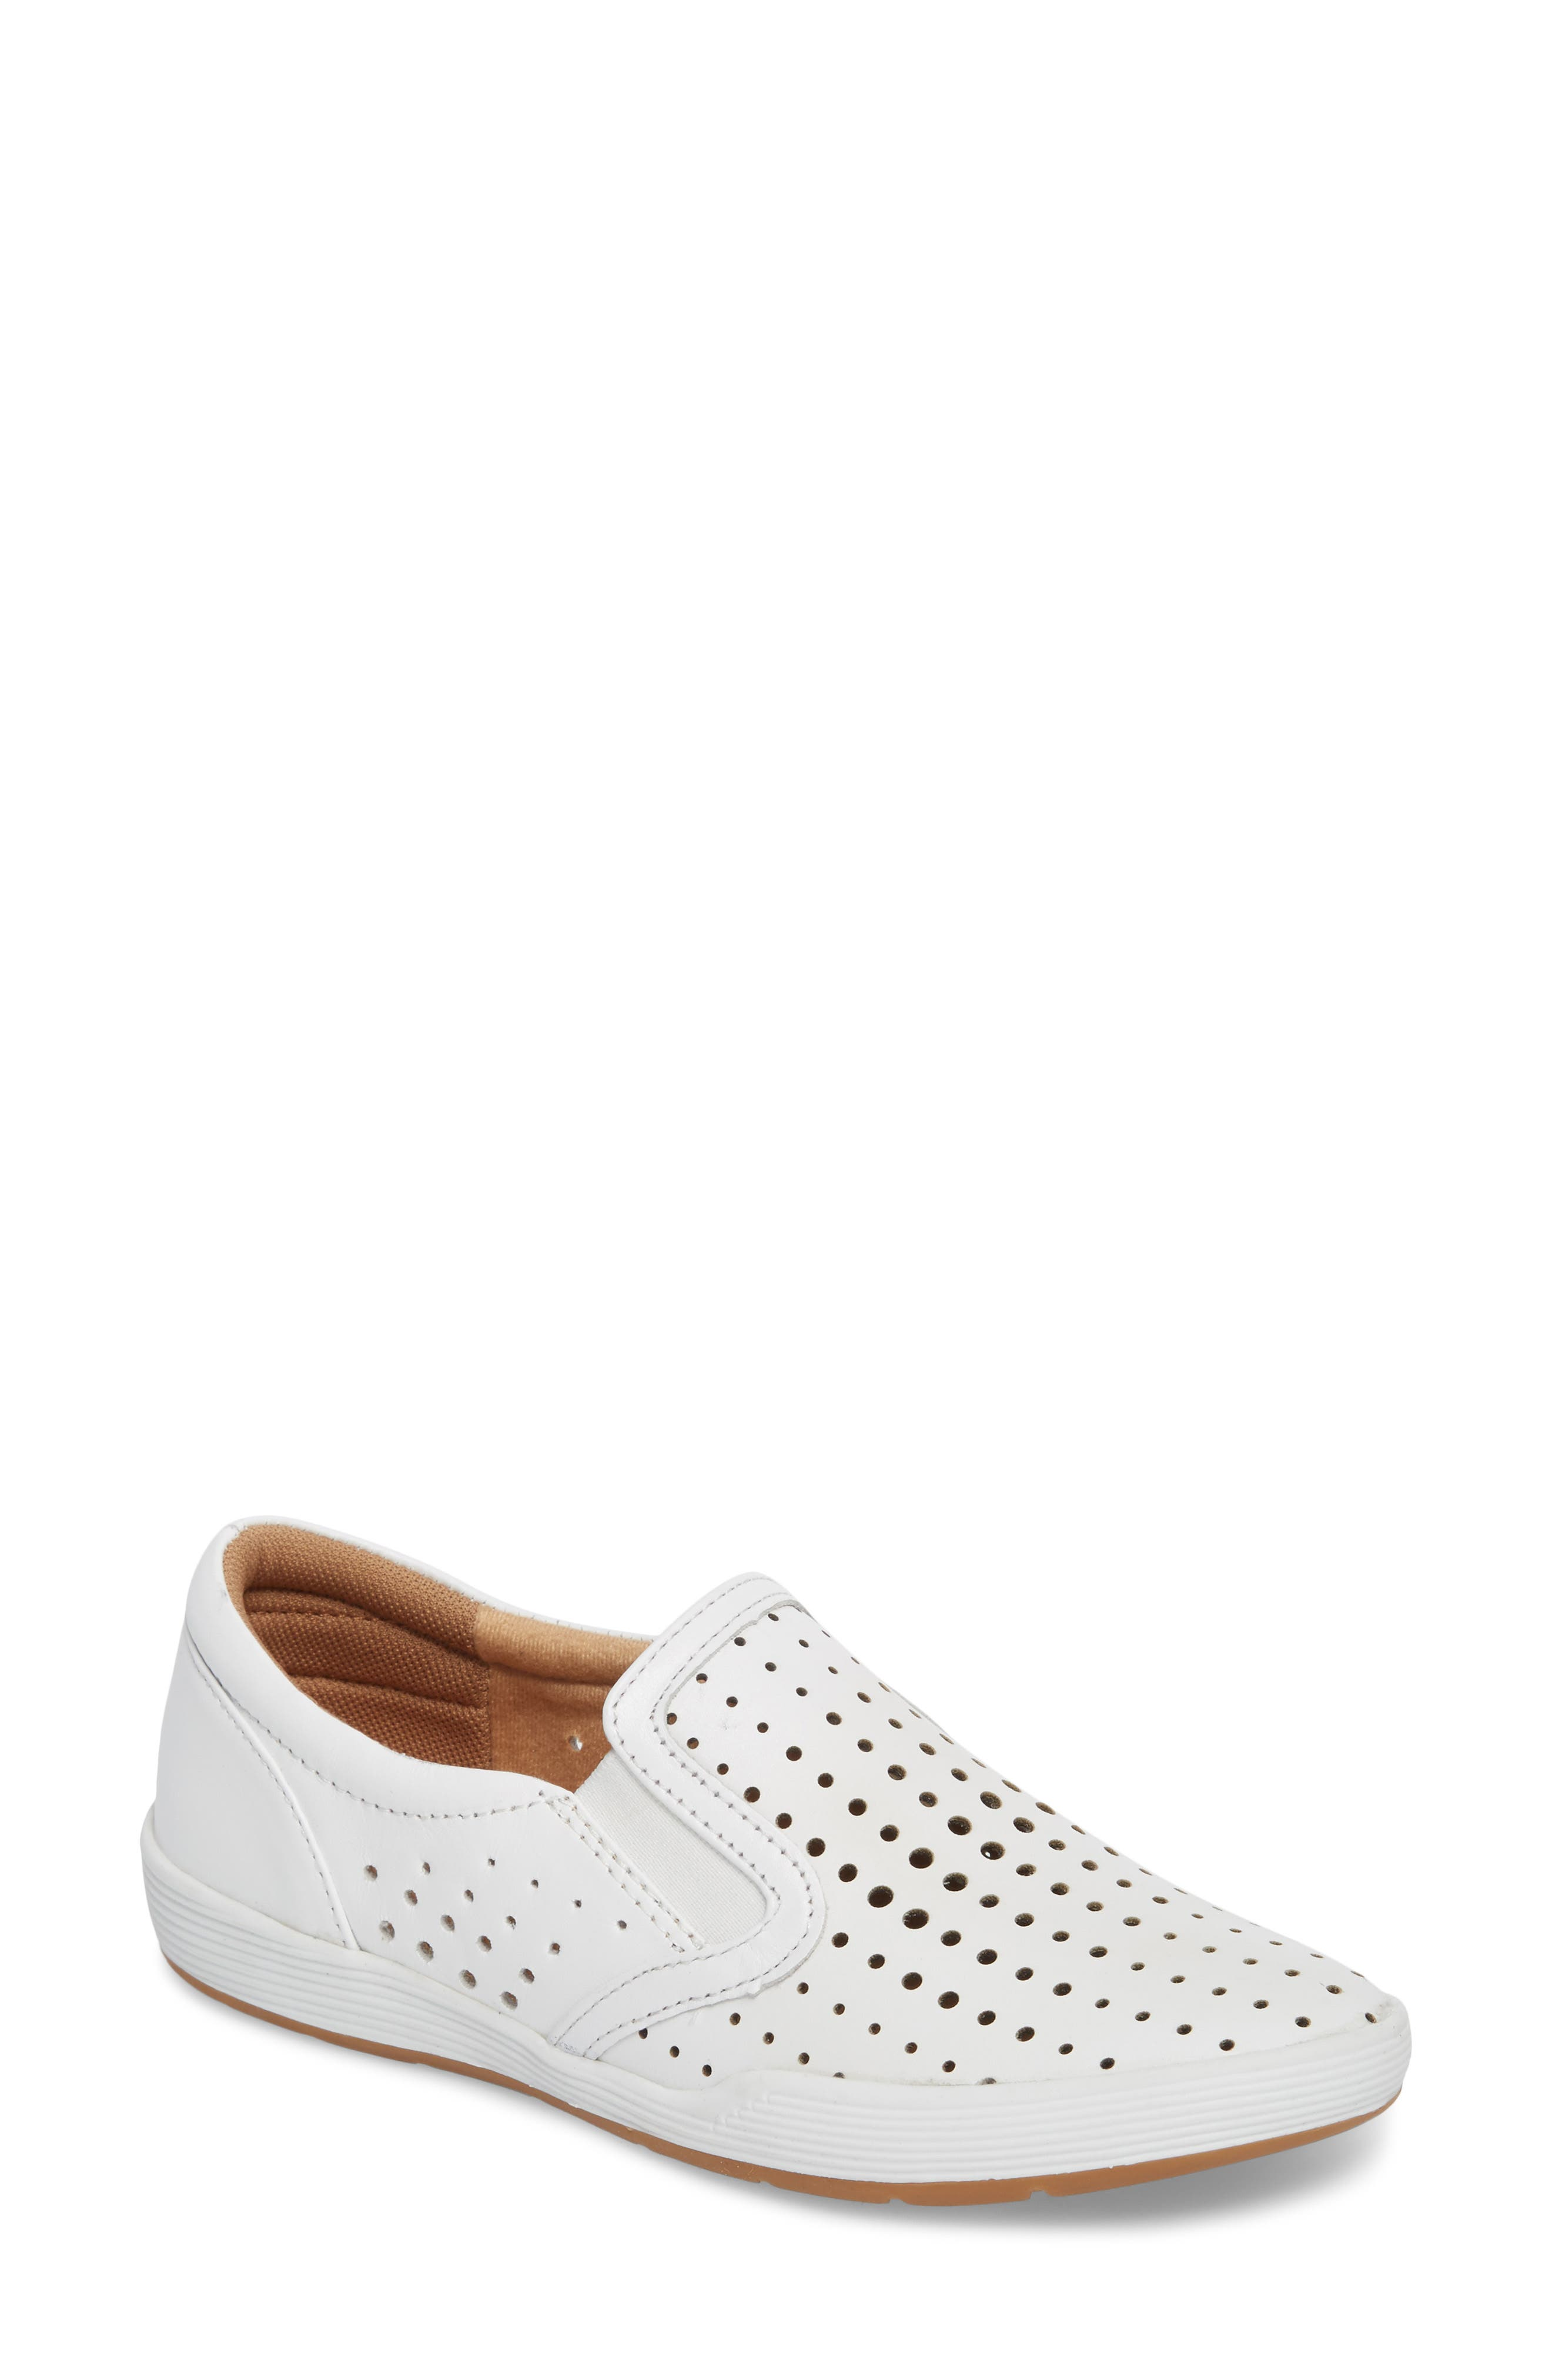 Lyra Perforated Slip-On Sneaker,                         Main,                         color, White Leather